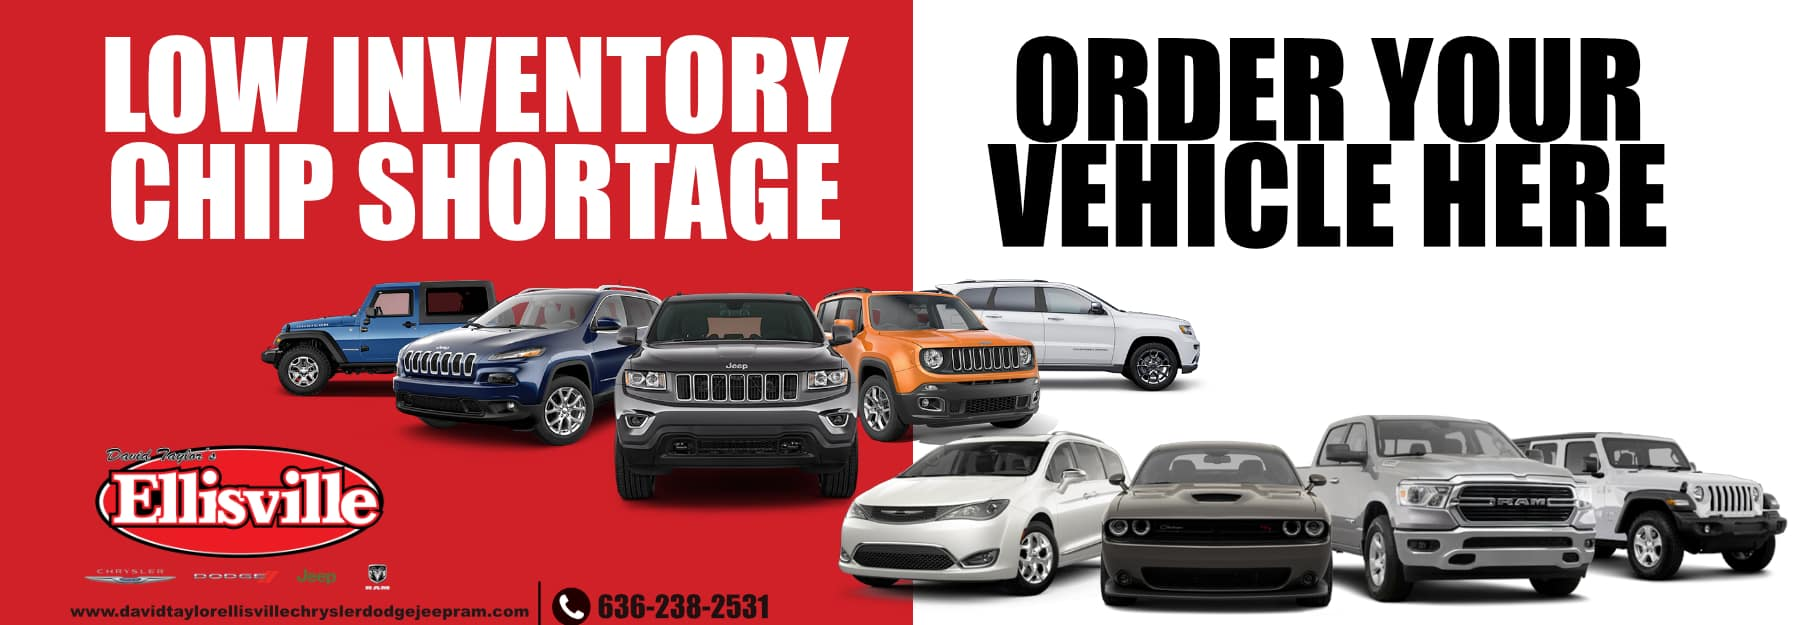 Low Inventory Chip Shortage - Order Your Vehicle Now